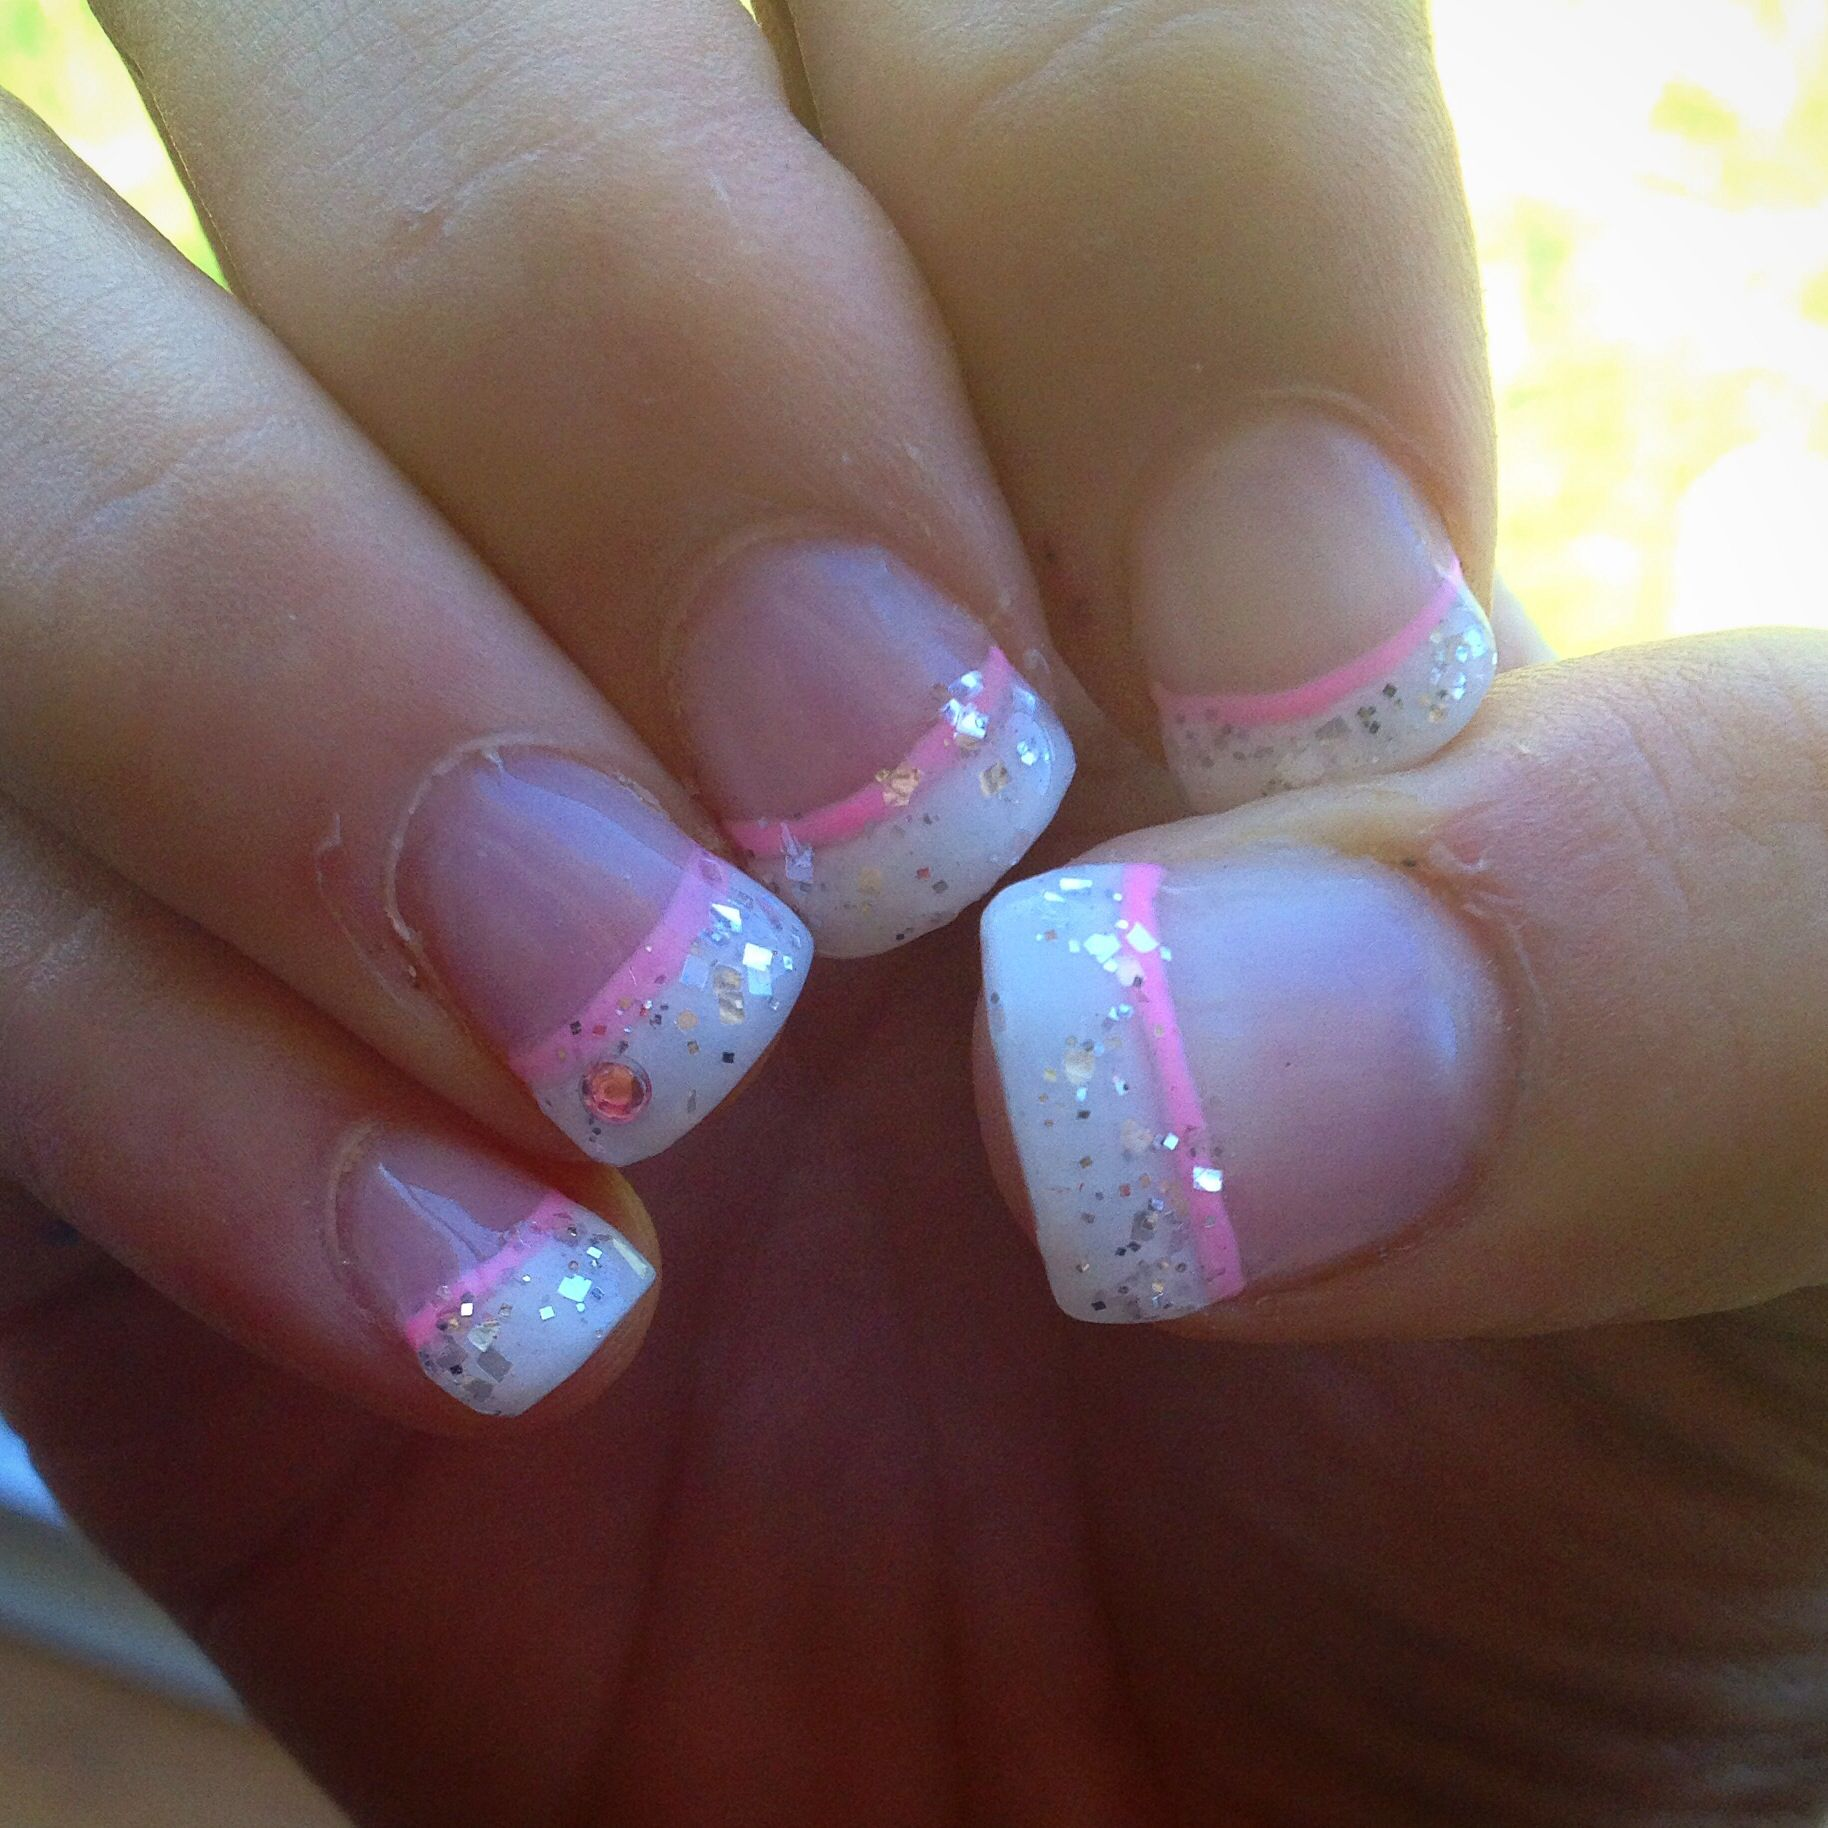 White French Manicure With A Twist, Silver Glitter, And A